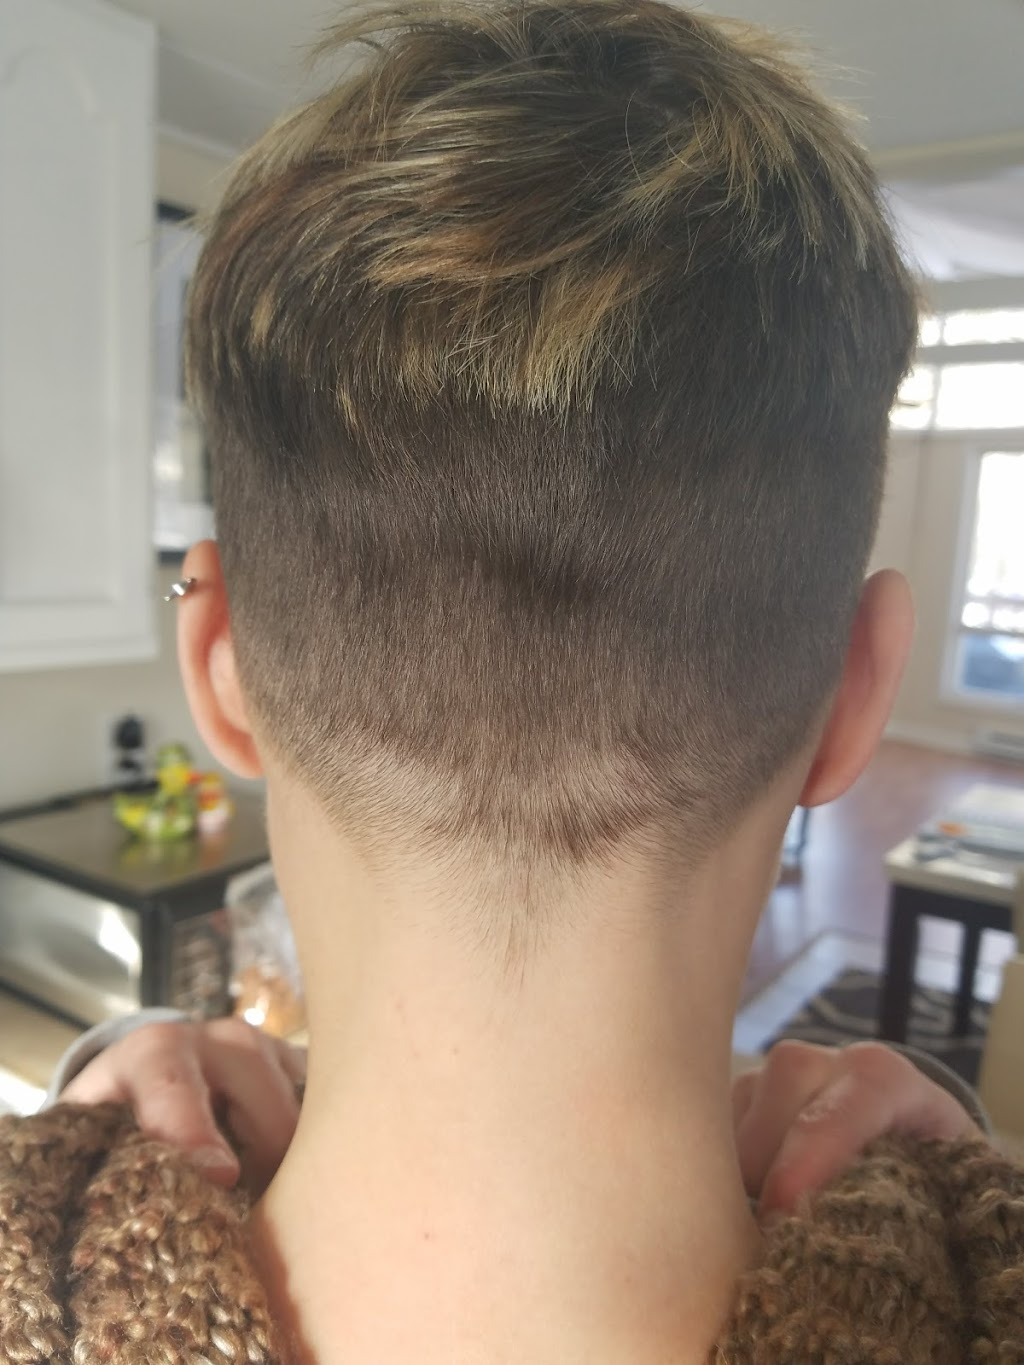 Buzz Cutz Salon and Spa - hair care    Photo 3 of 10   Address: 1831 PA-739, Dingmans Ferry, PA 18328, USA   Phone: (570) 828-7903